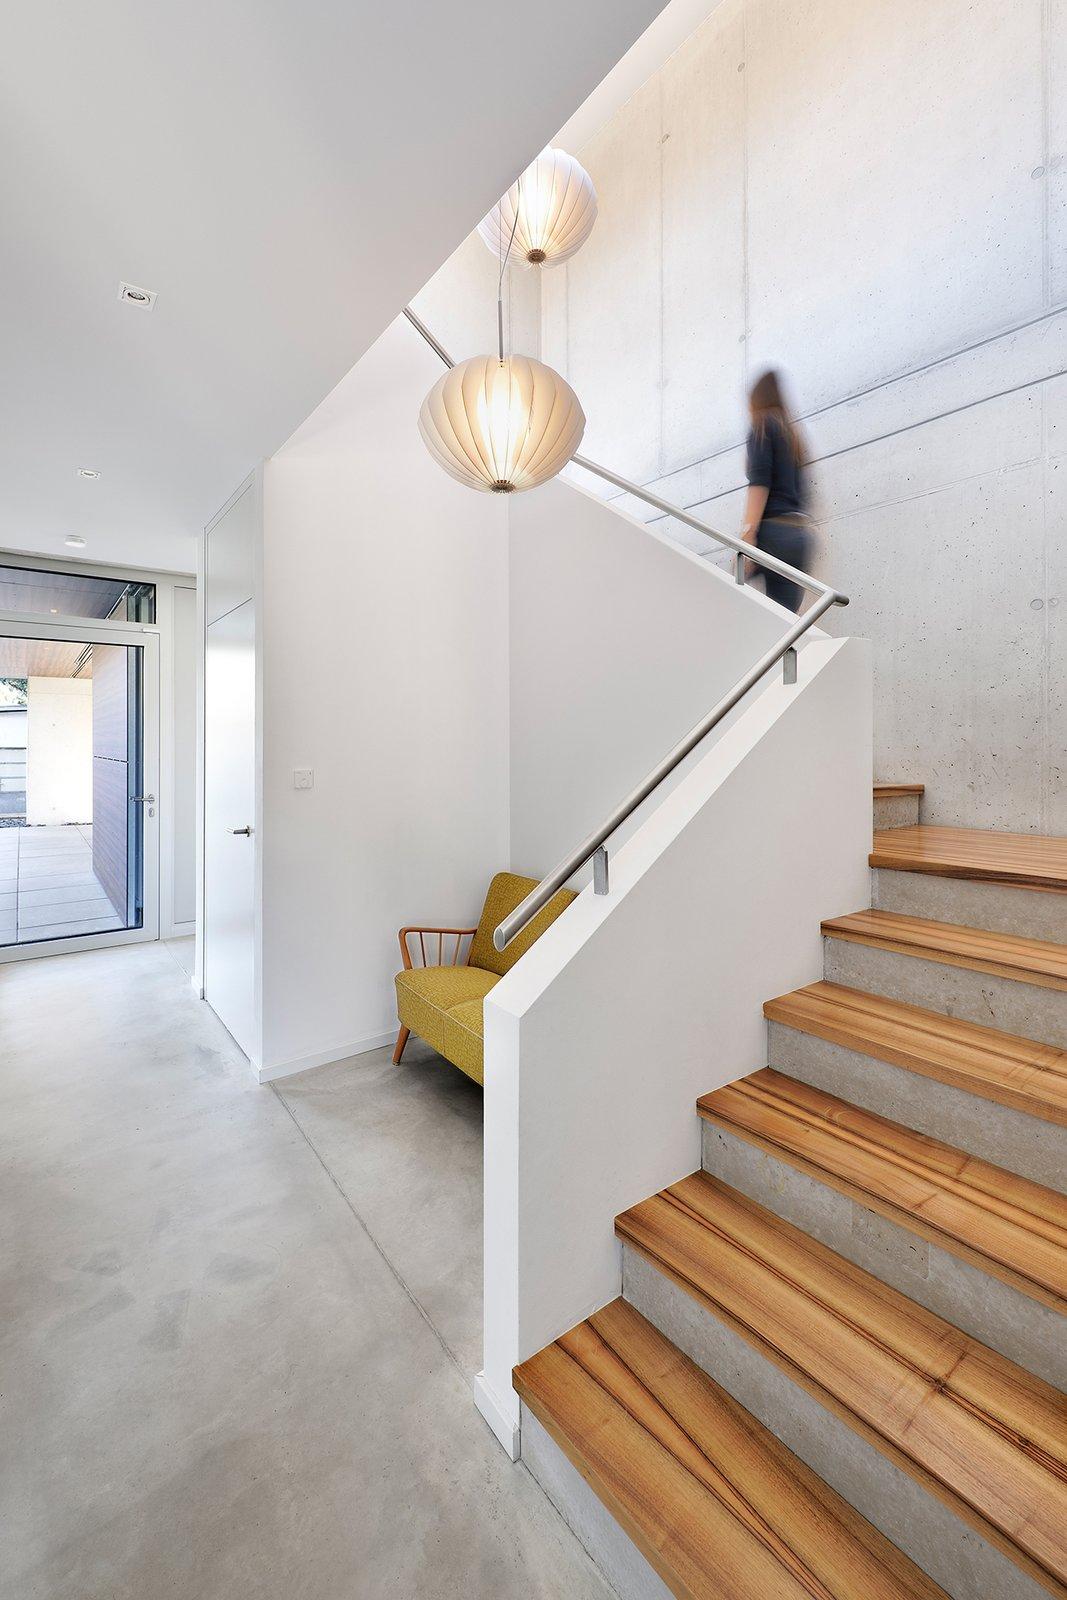 Staircase, Wood Tread, Concrete Tread, and Metal Railing Staircase with special wood decor.  House KI